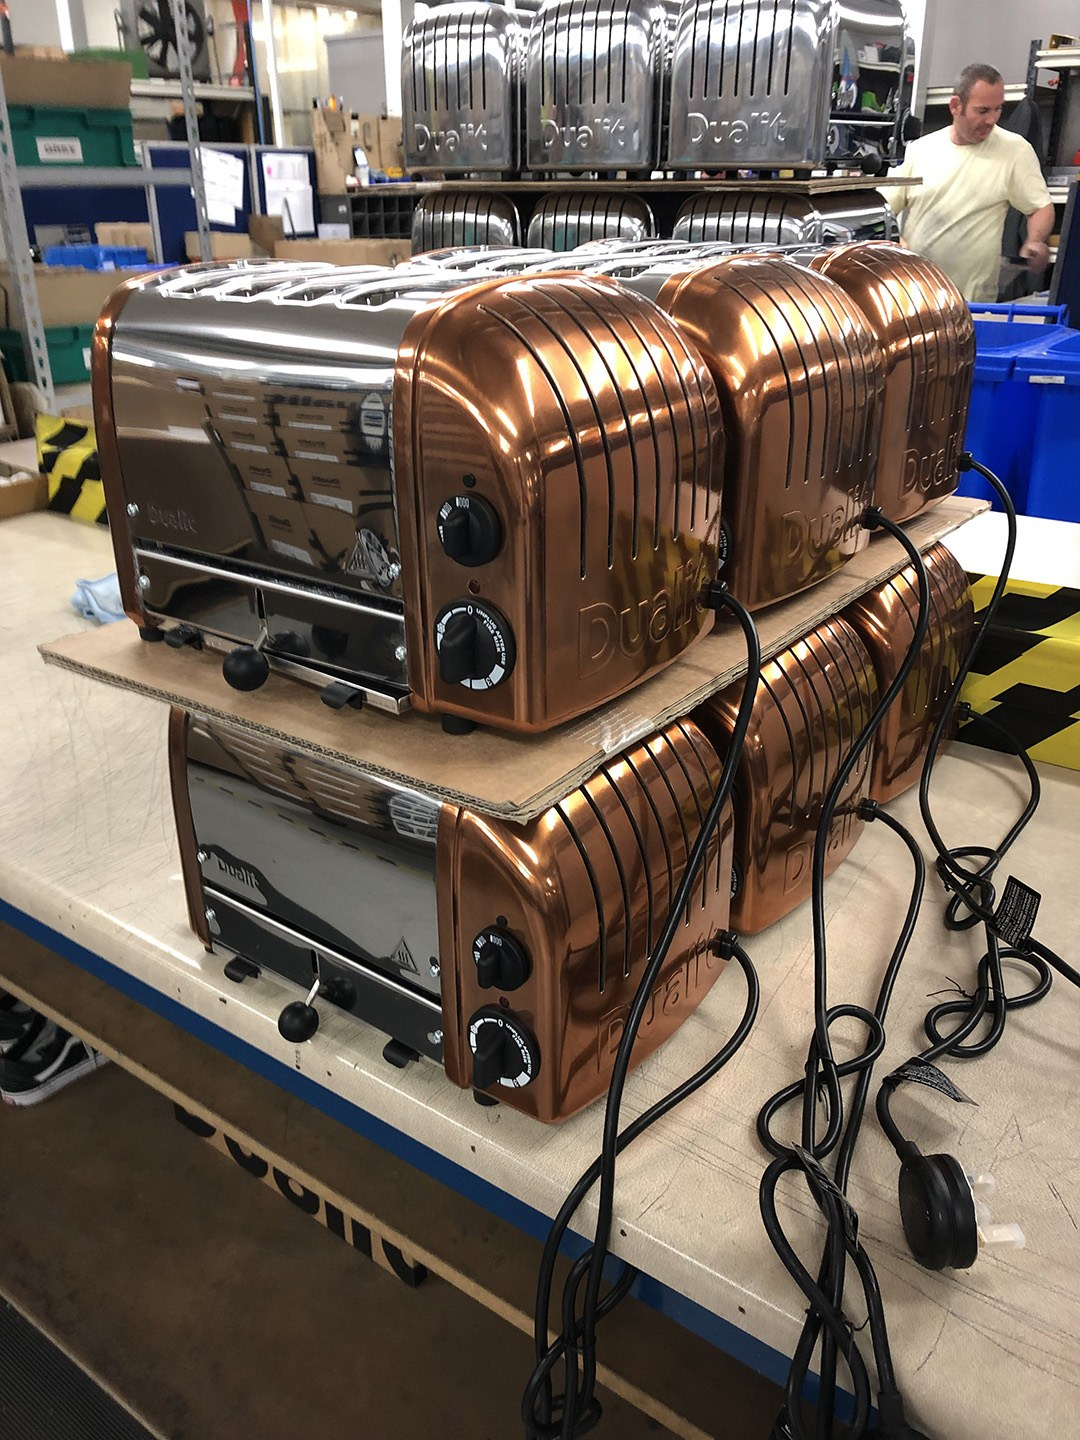 Toasters ready for packing